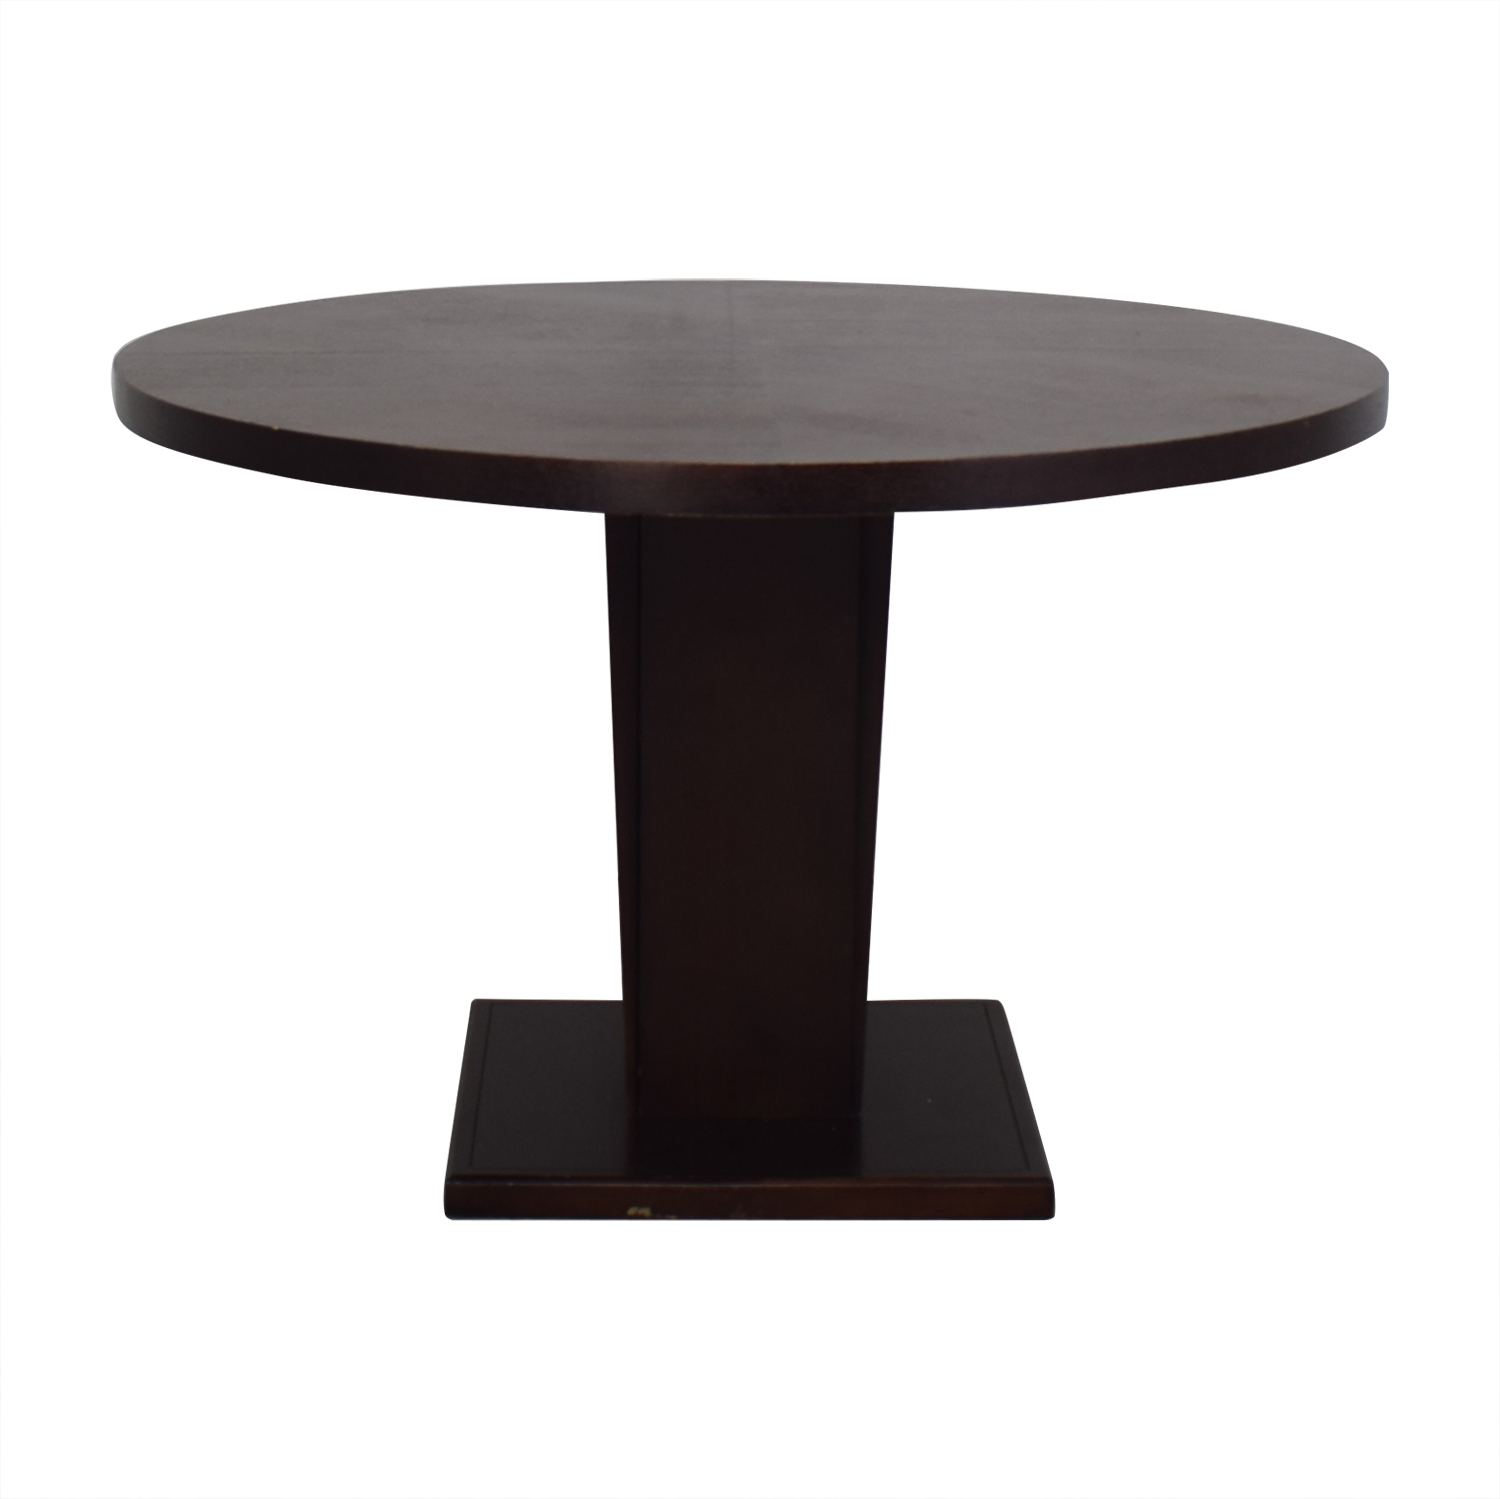 shop Crate & Barrel Espresso Round Dining Table Crate & Barrel